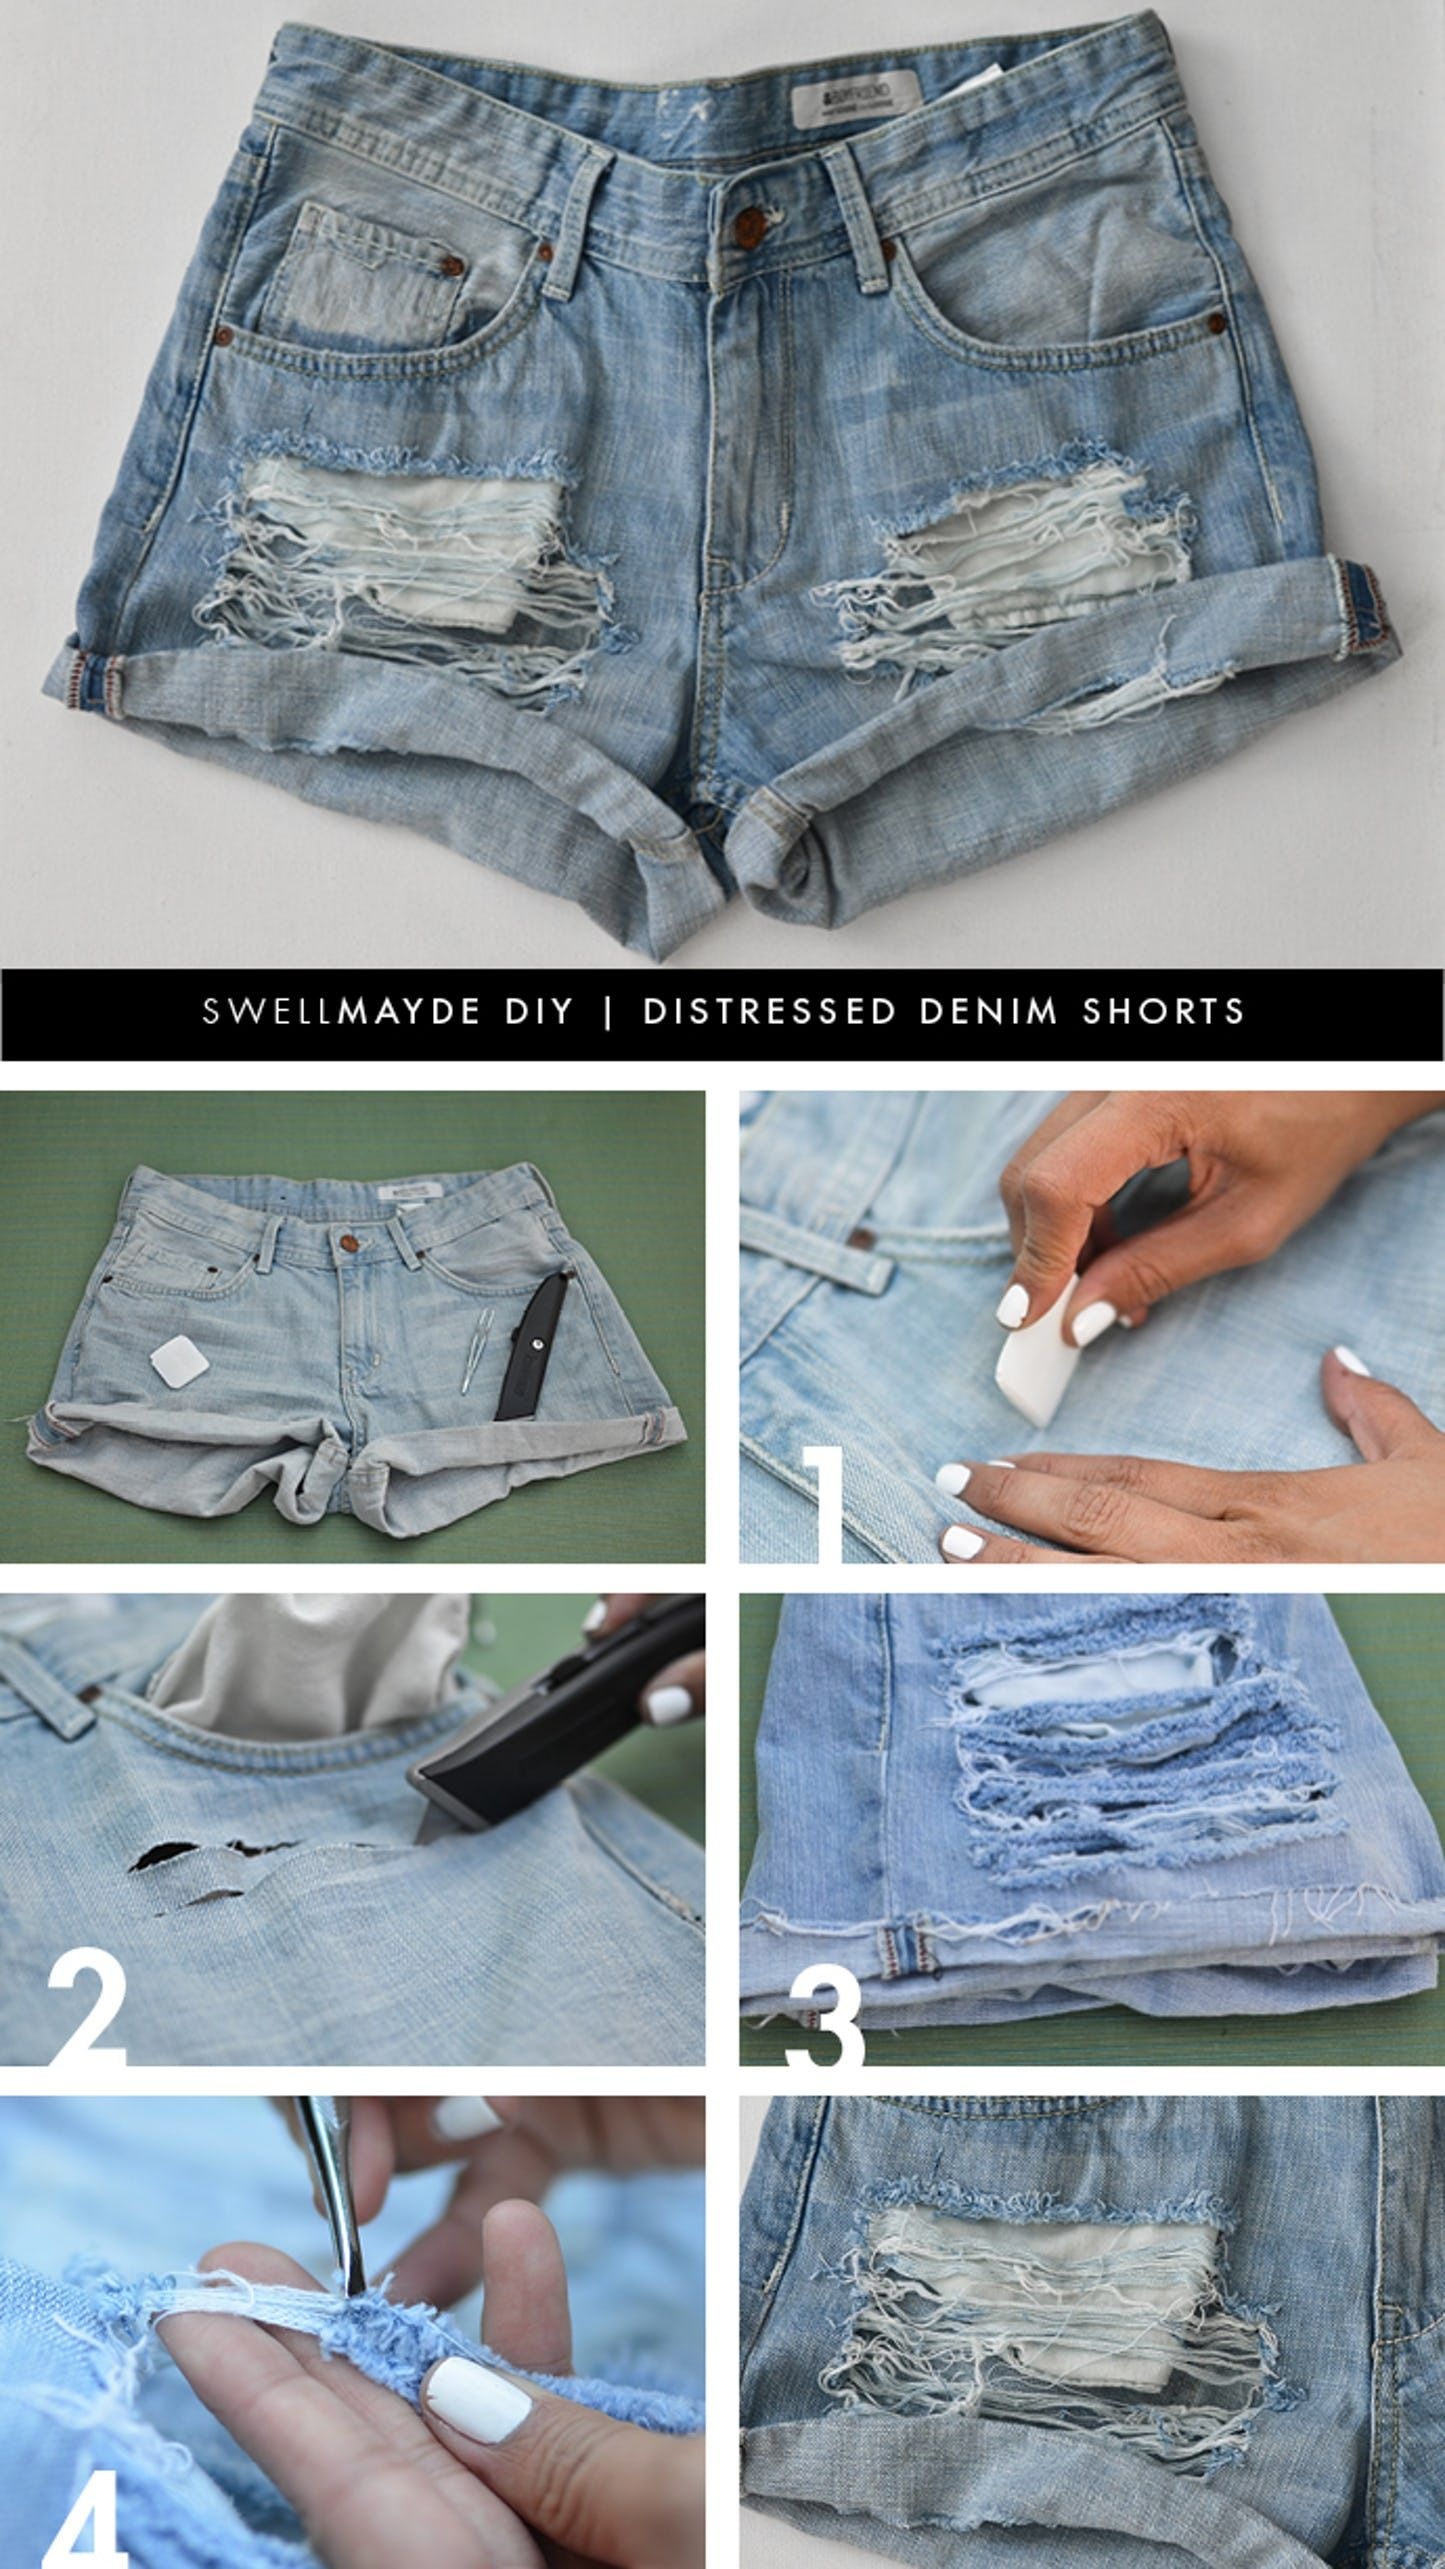 All Things Denim 19 Diy Inspirations For Denim Lovers Diy Ripped Jeans Diy Distressed Jeans Diy Shorts